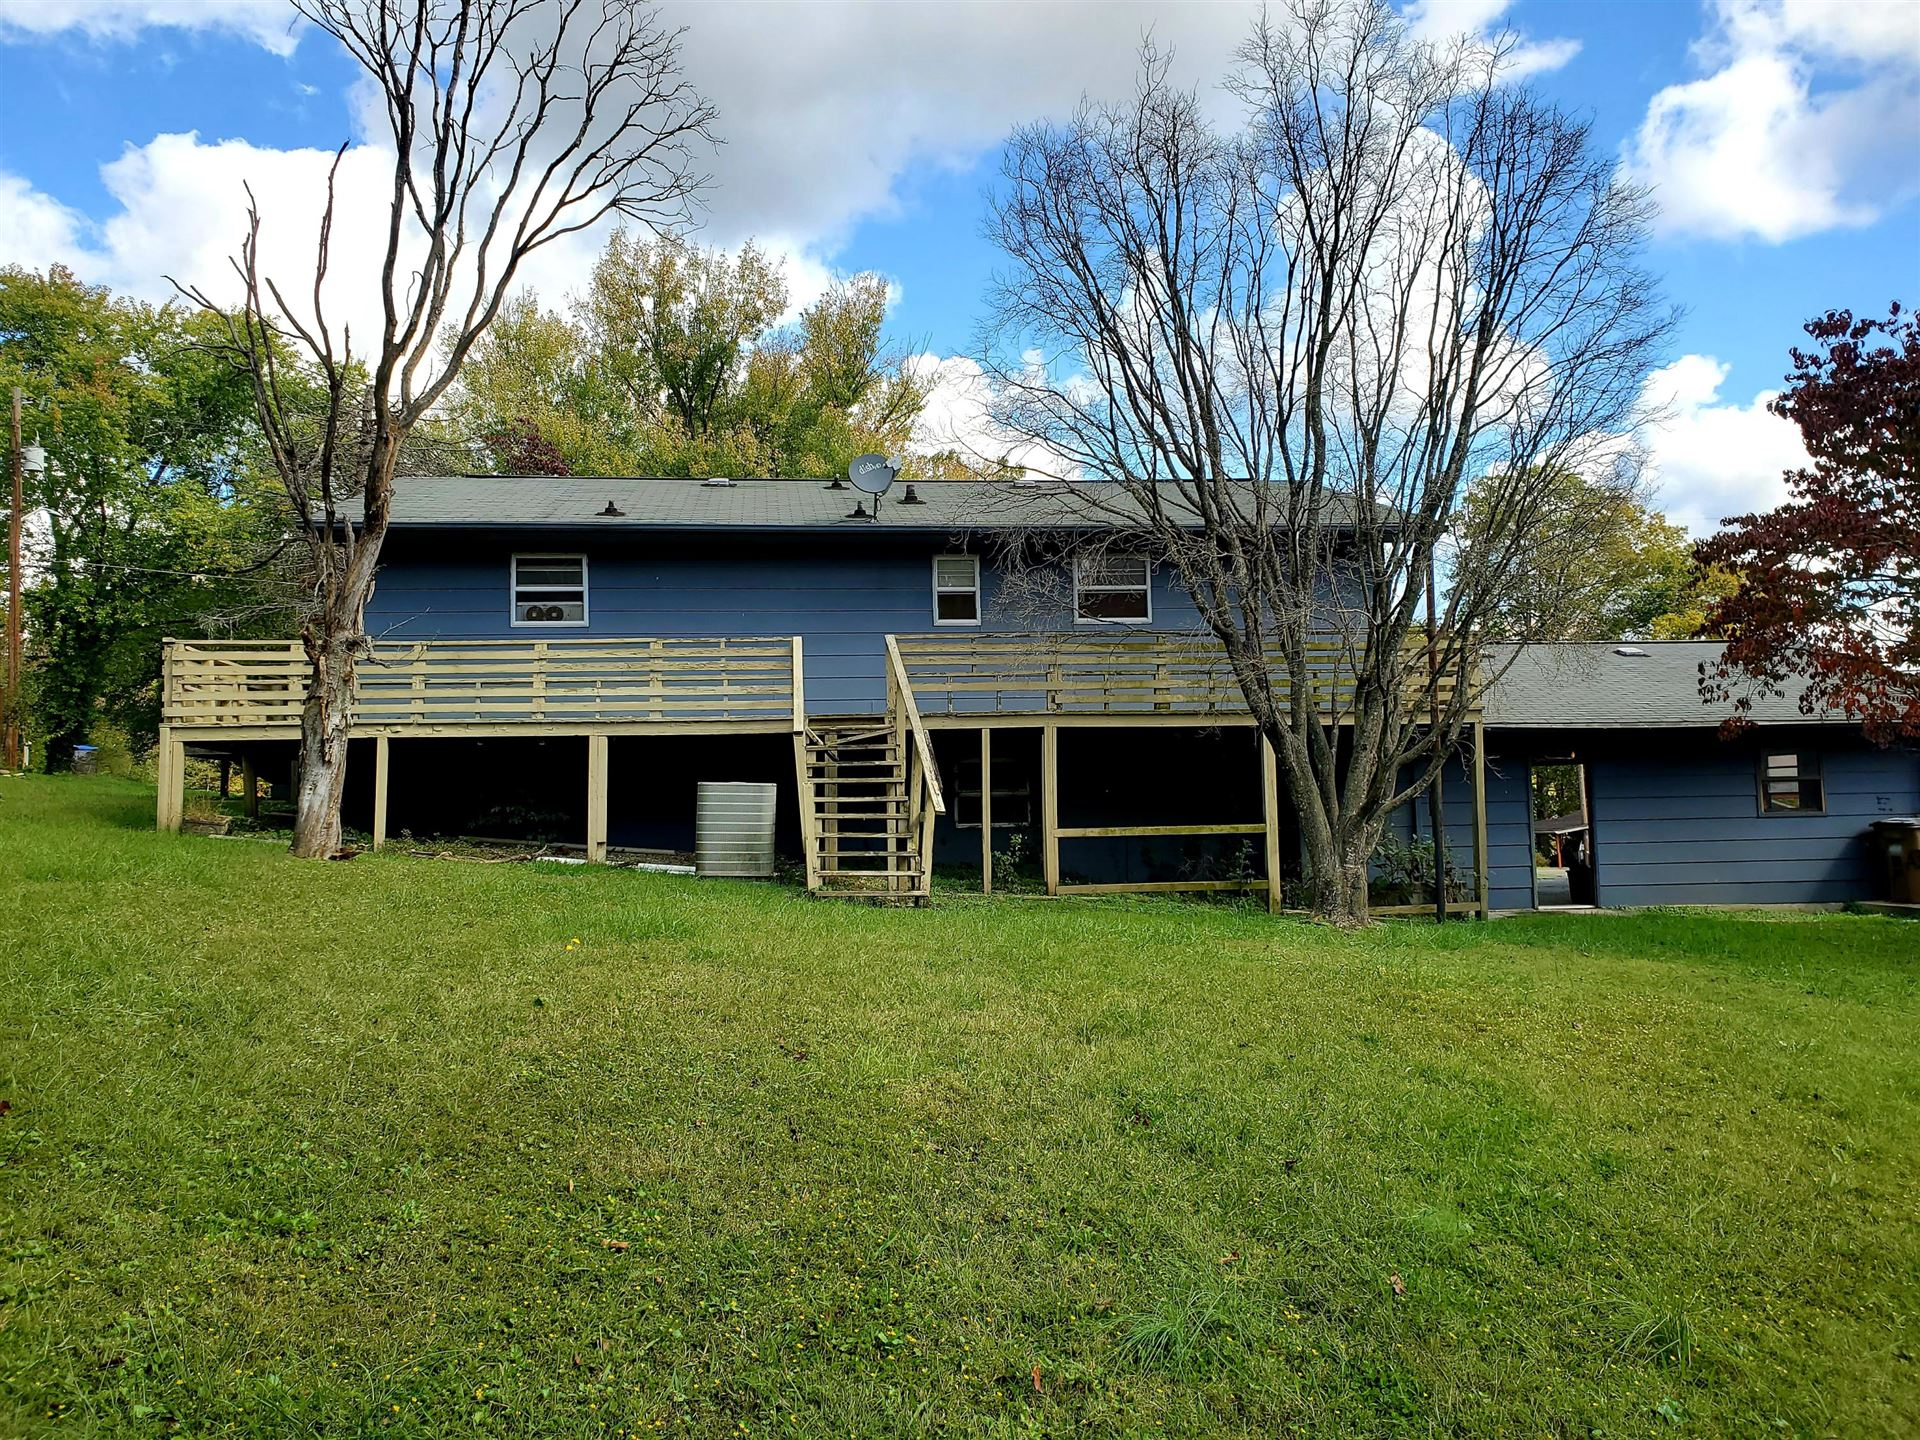 Photo of 1621 Leconte Rd, Knoxville, TN 37914 (MLS # 1133320)